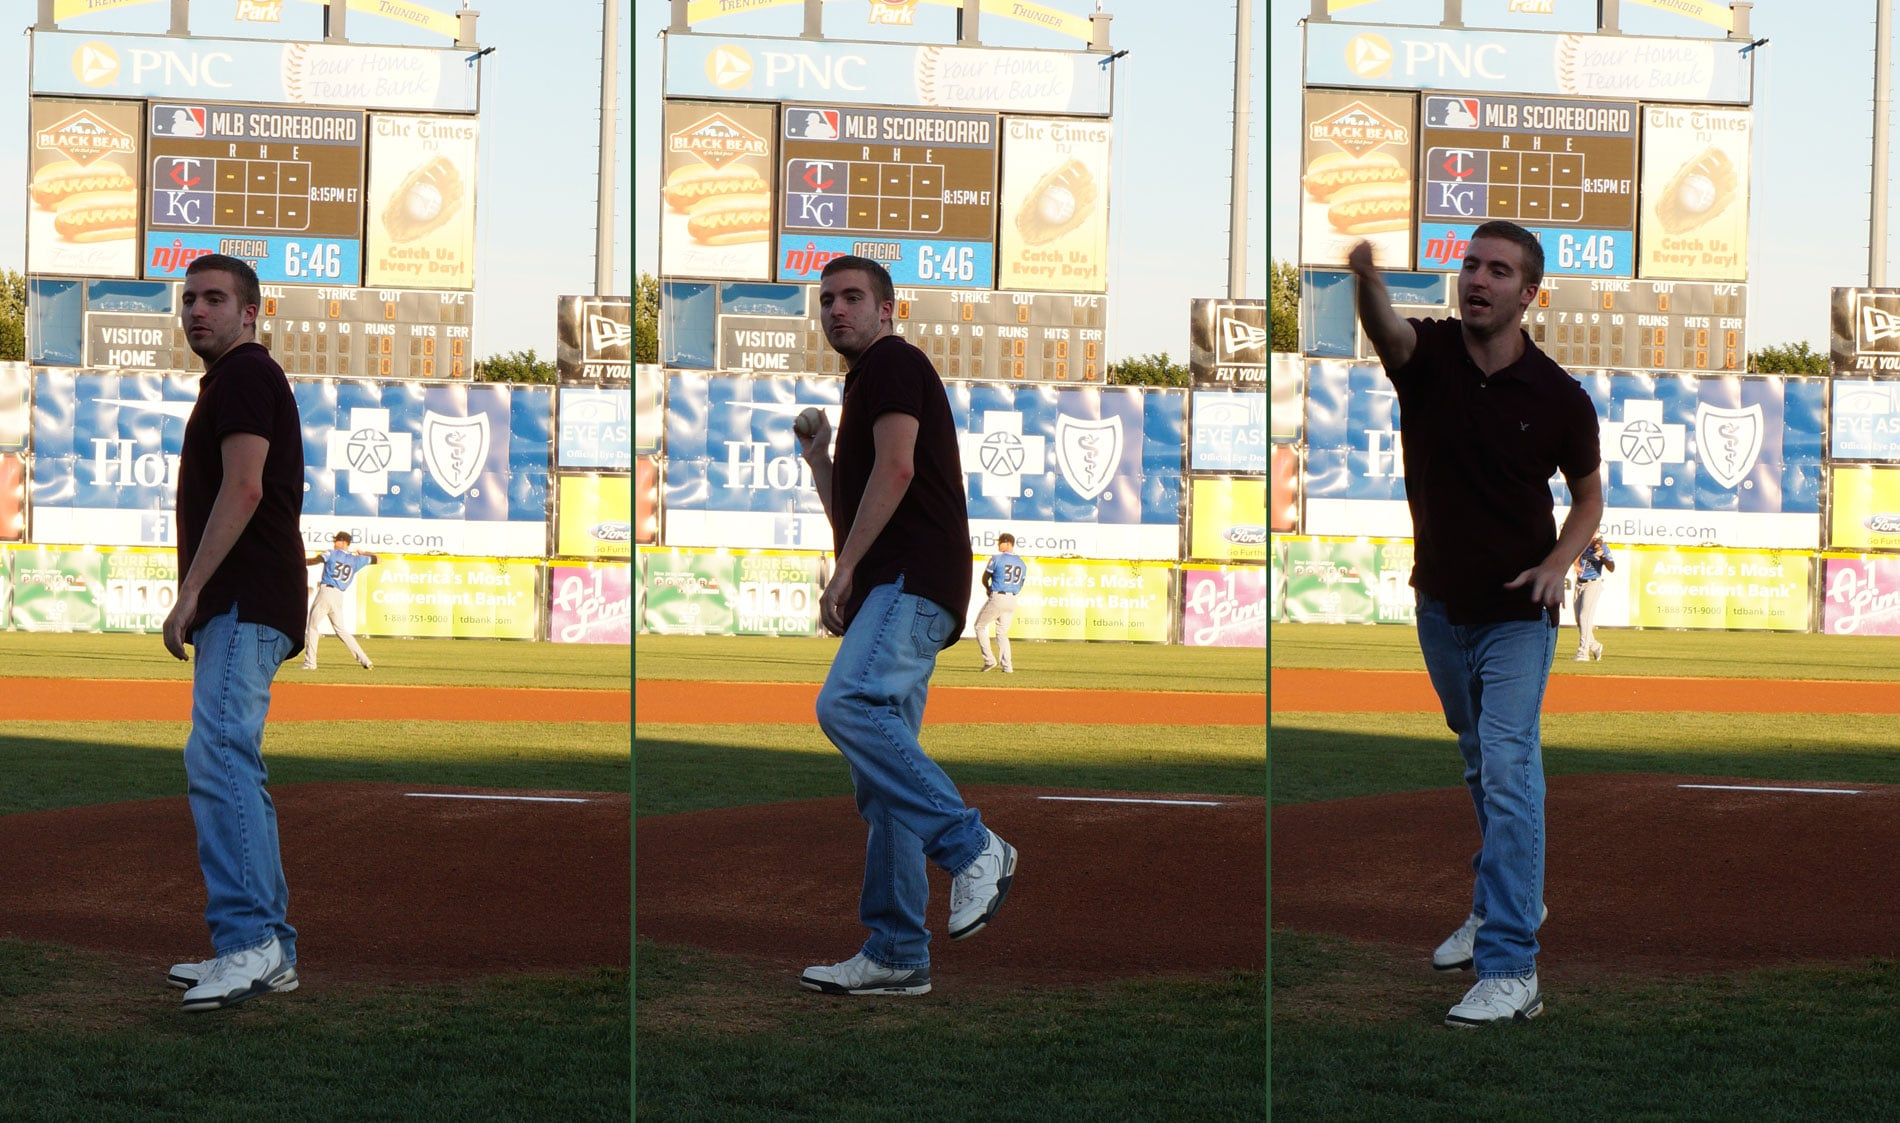 STEP Participant Brian V. threw out the ceremonial first pitch at the game.